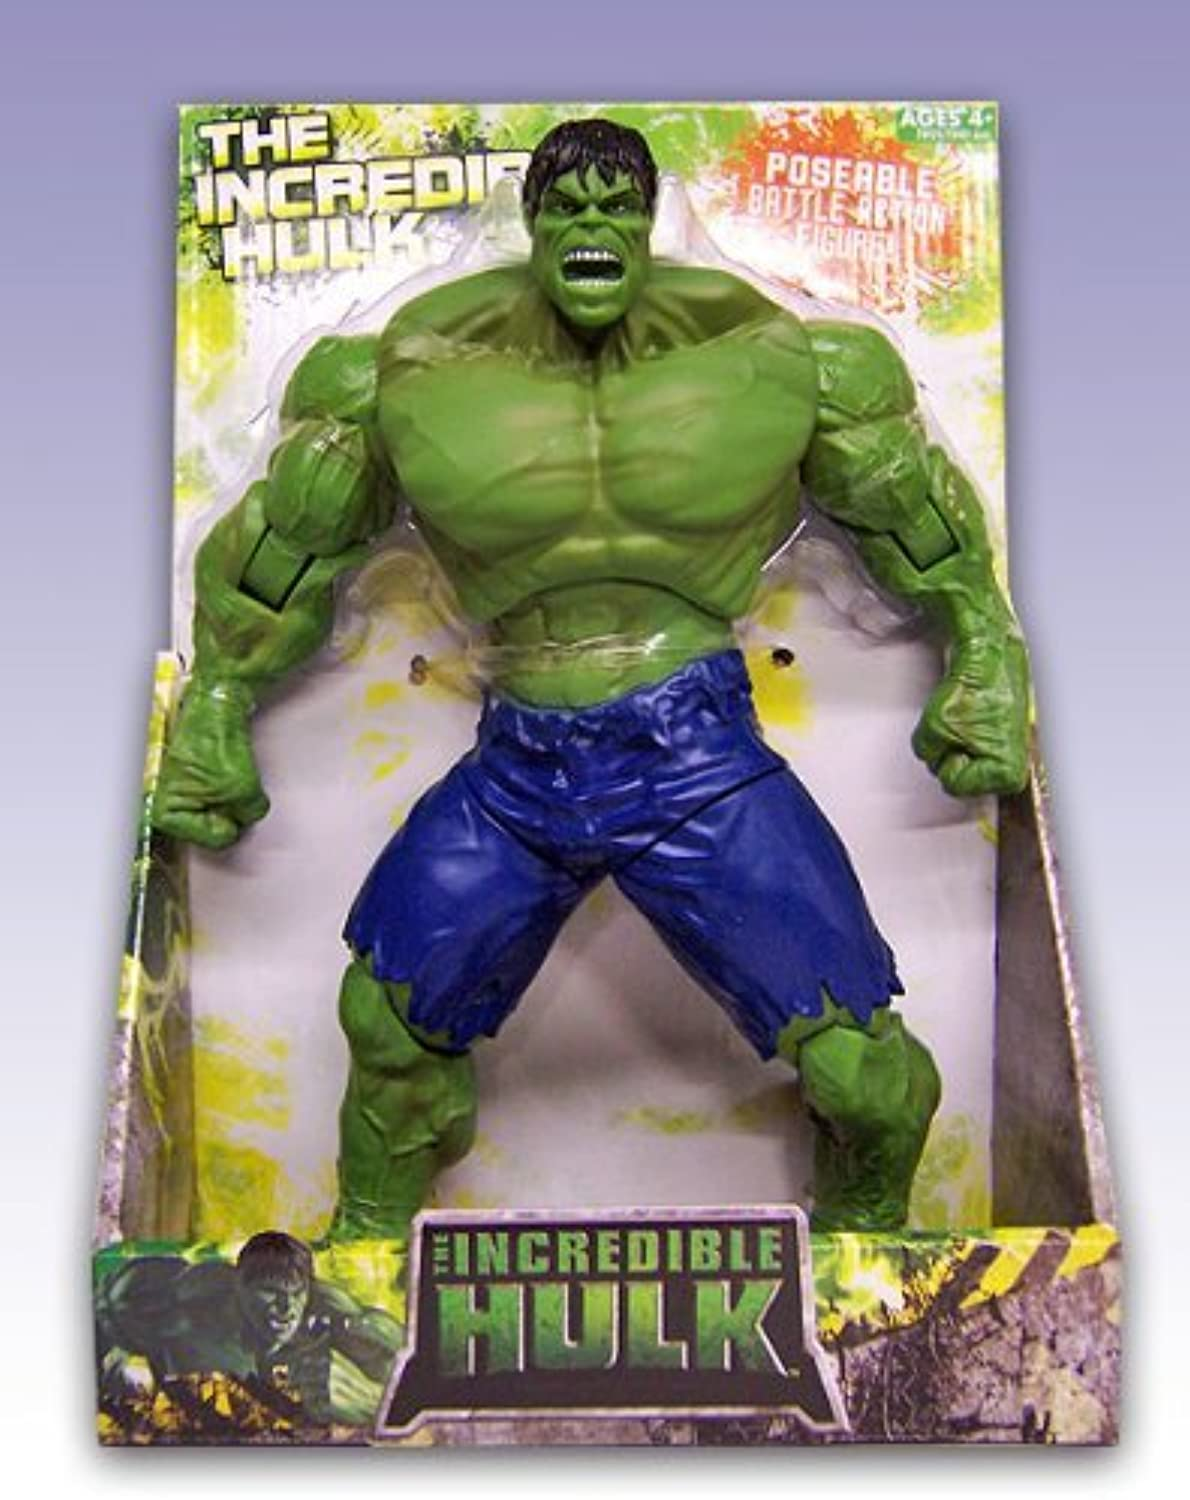 Unbekannt The Incrotible Hulk Poseable Battle Aktion steht 10inches Tall